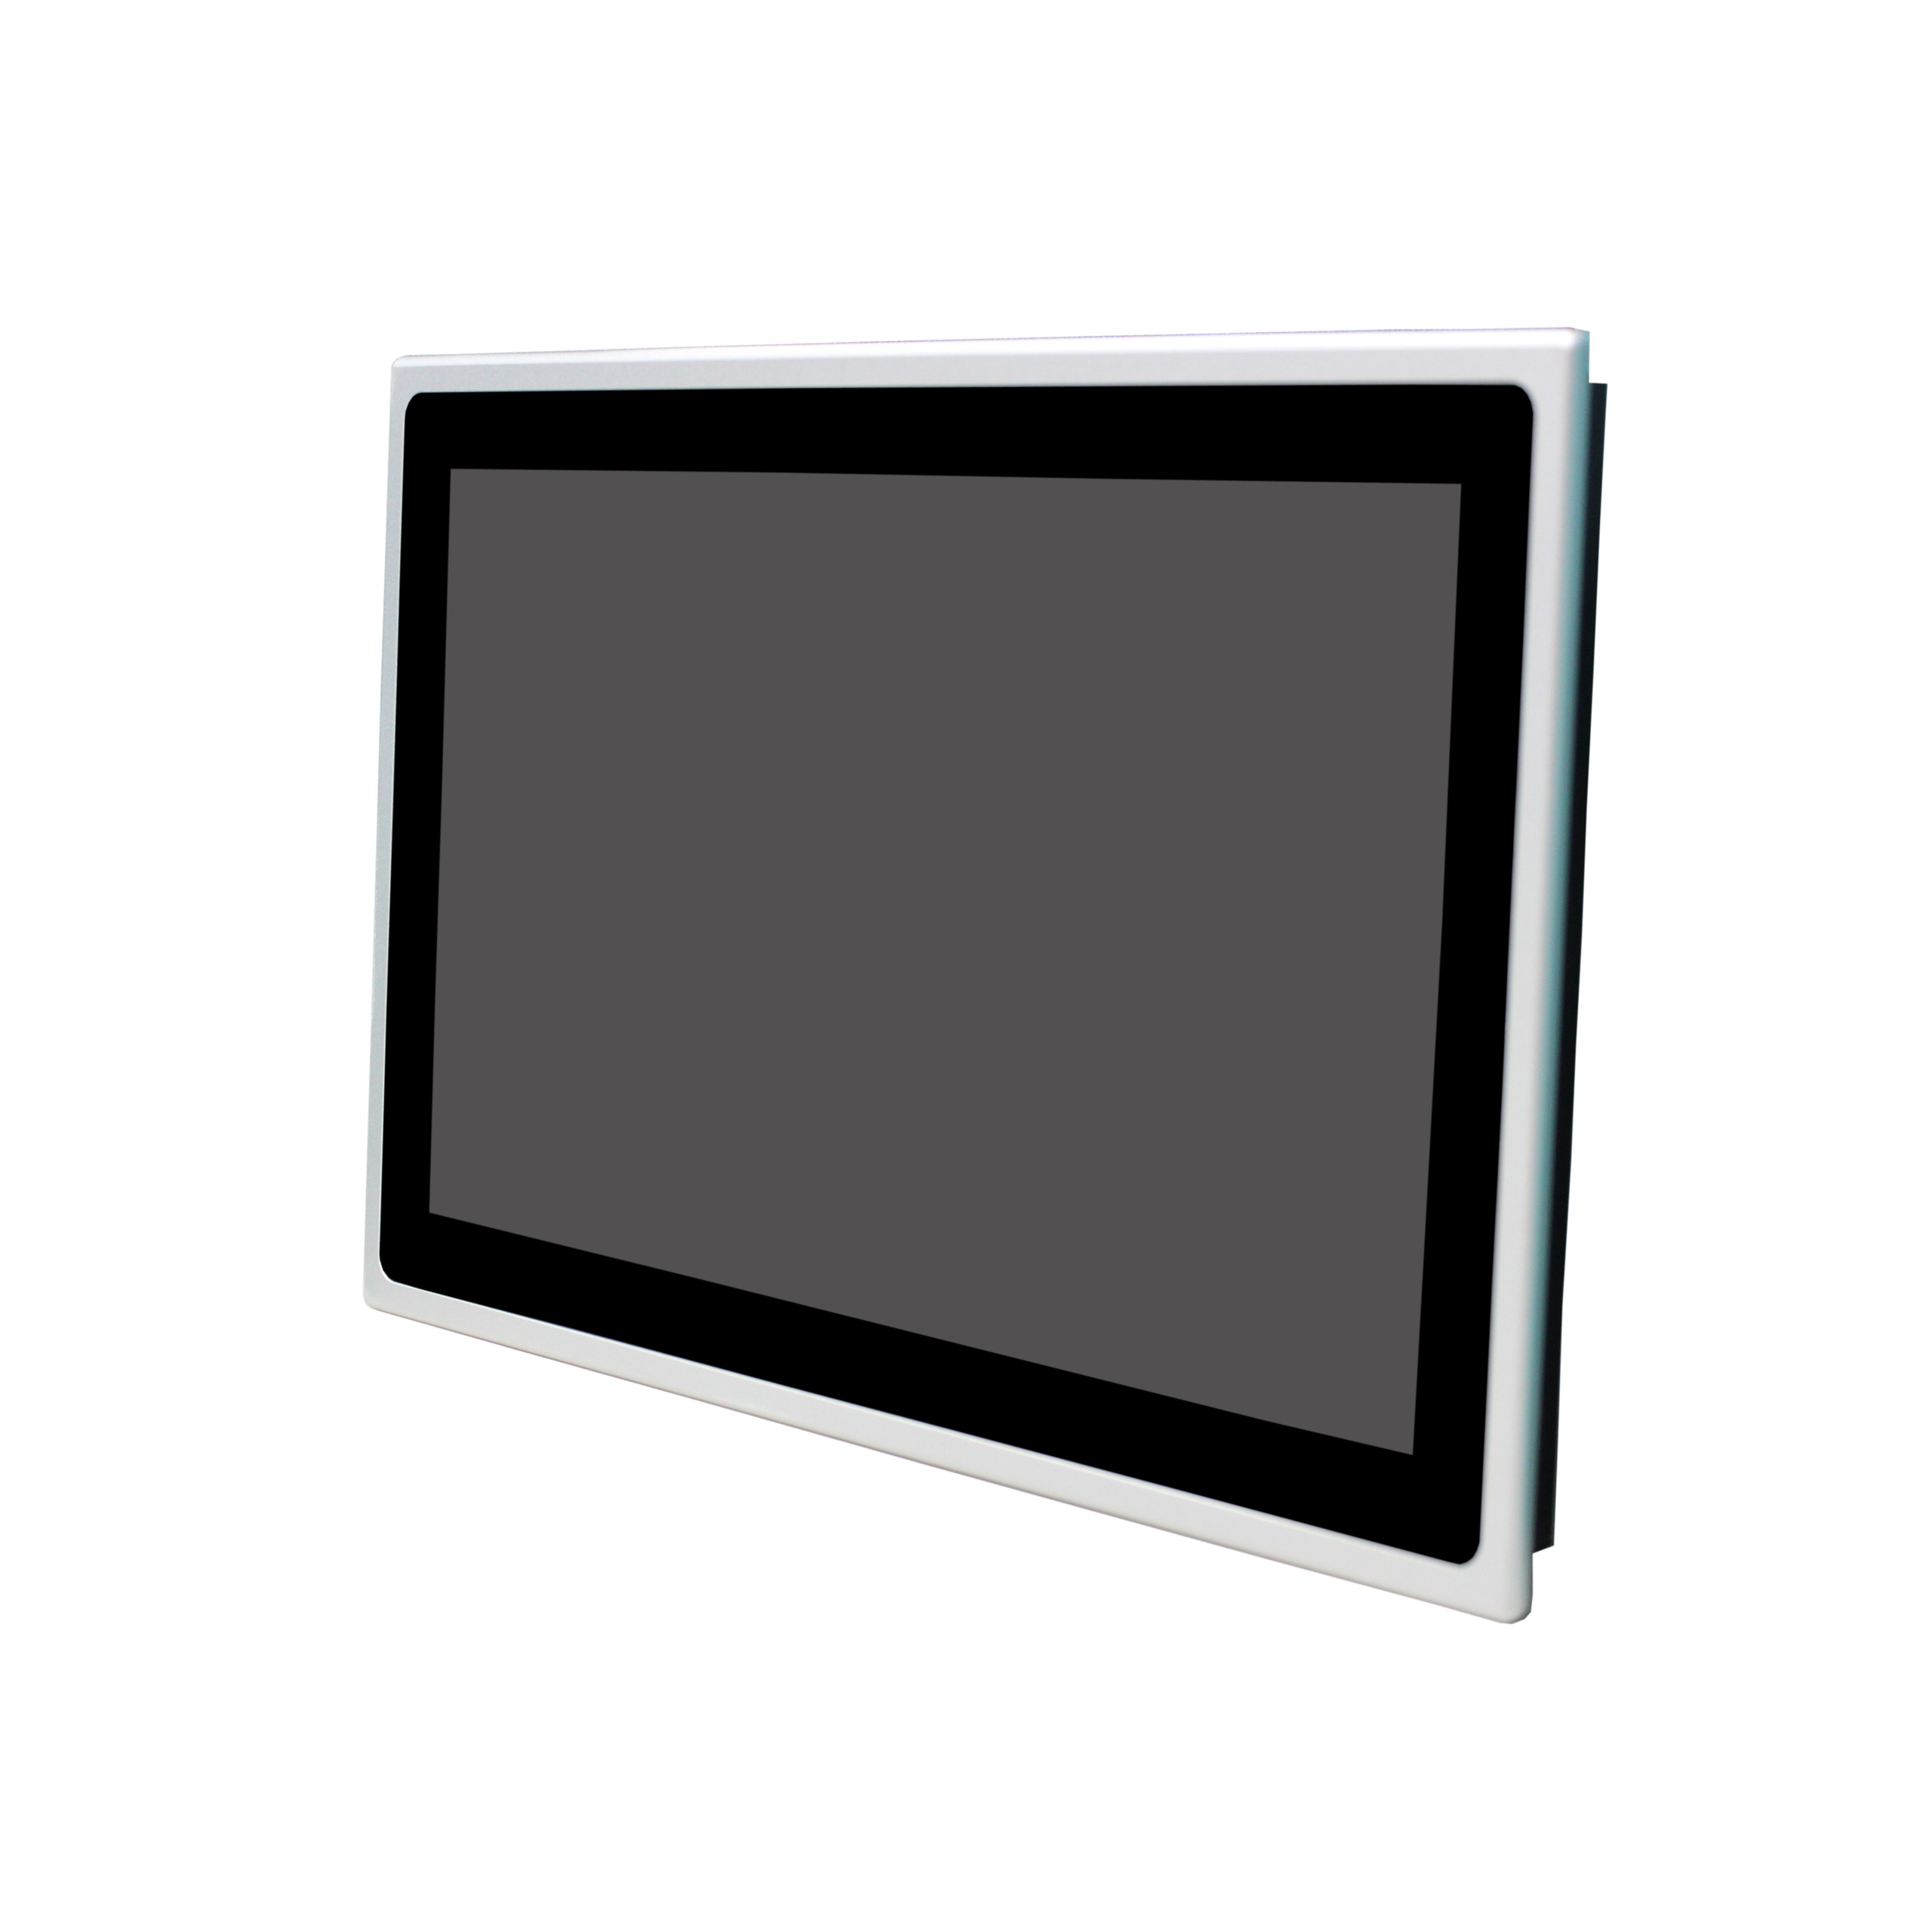 Widescreen Panel PC